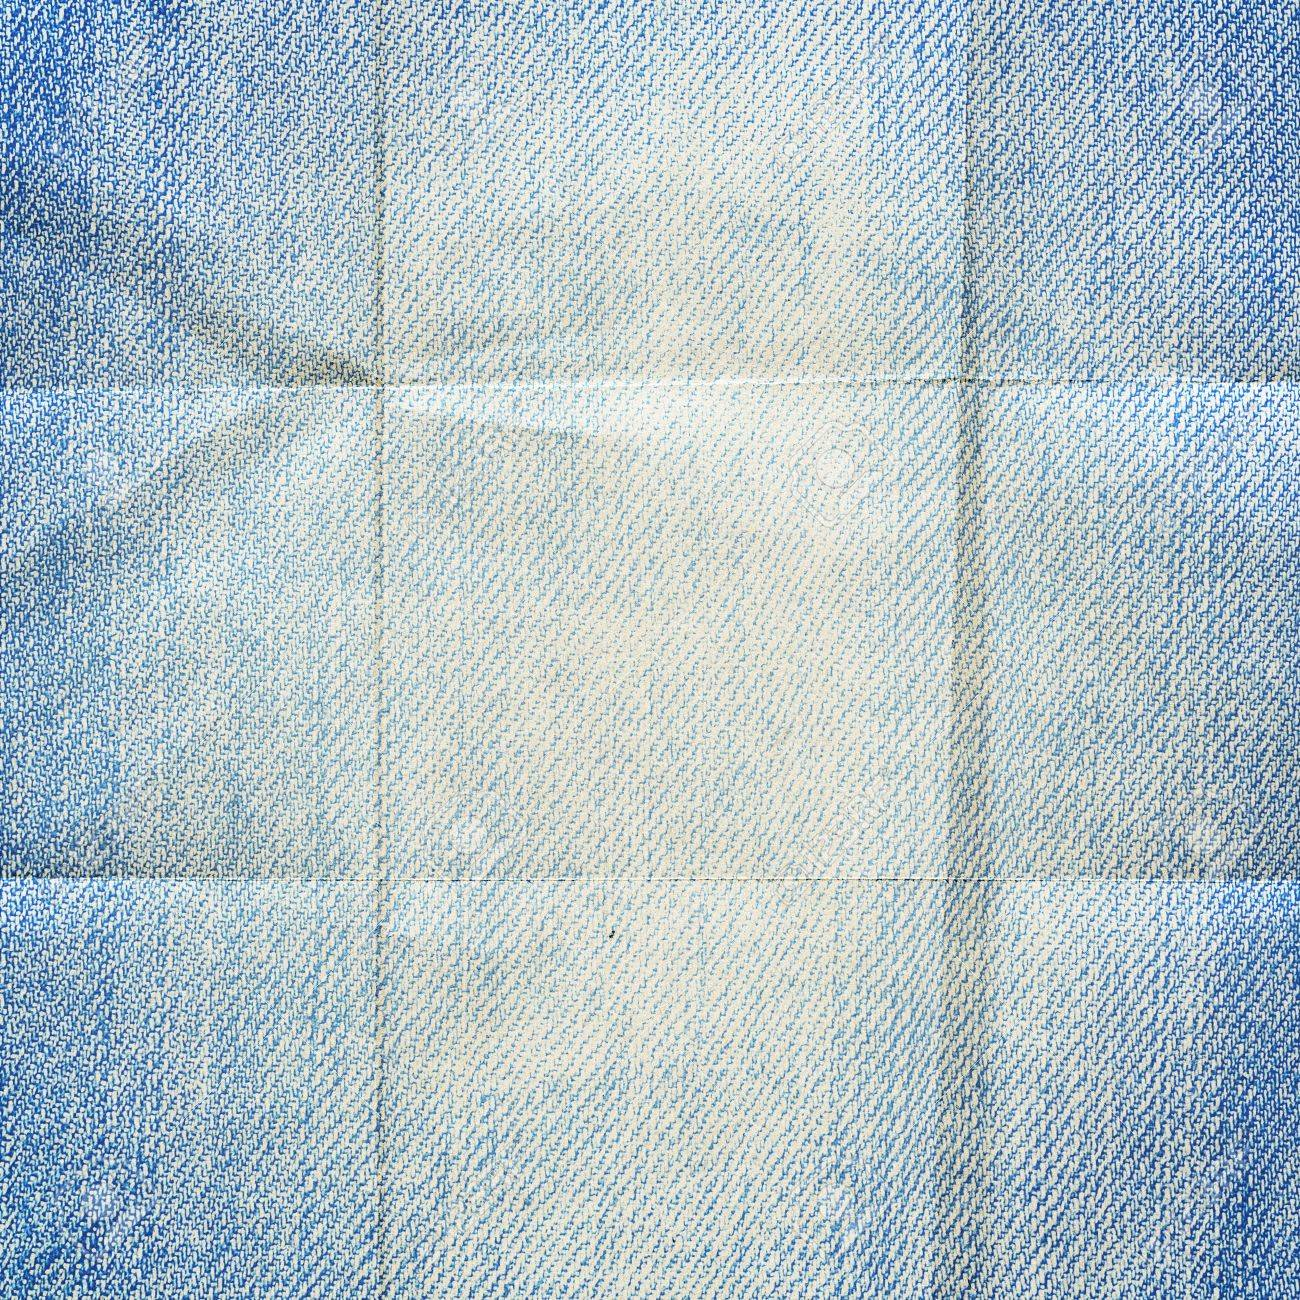 1db884ba3940 Stock photo vintage paper cotton texture abstract grunge jeans background  jpg 1300x1300 Abstract denim background